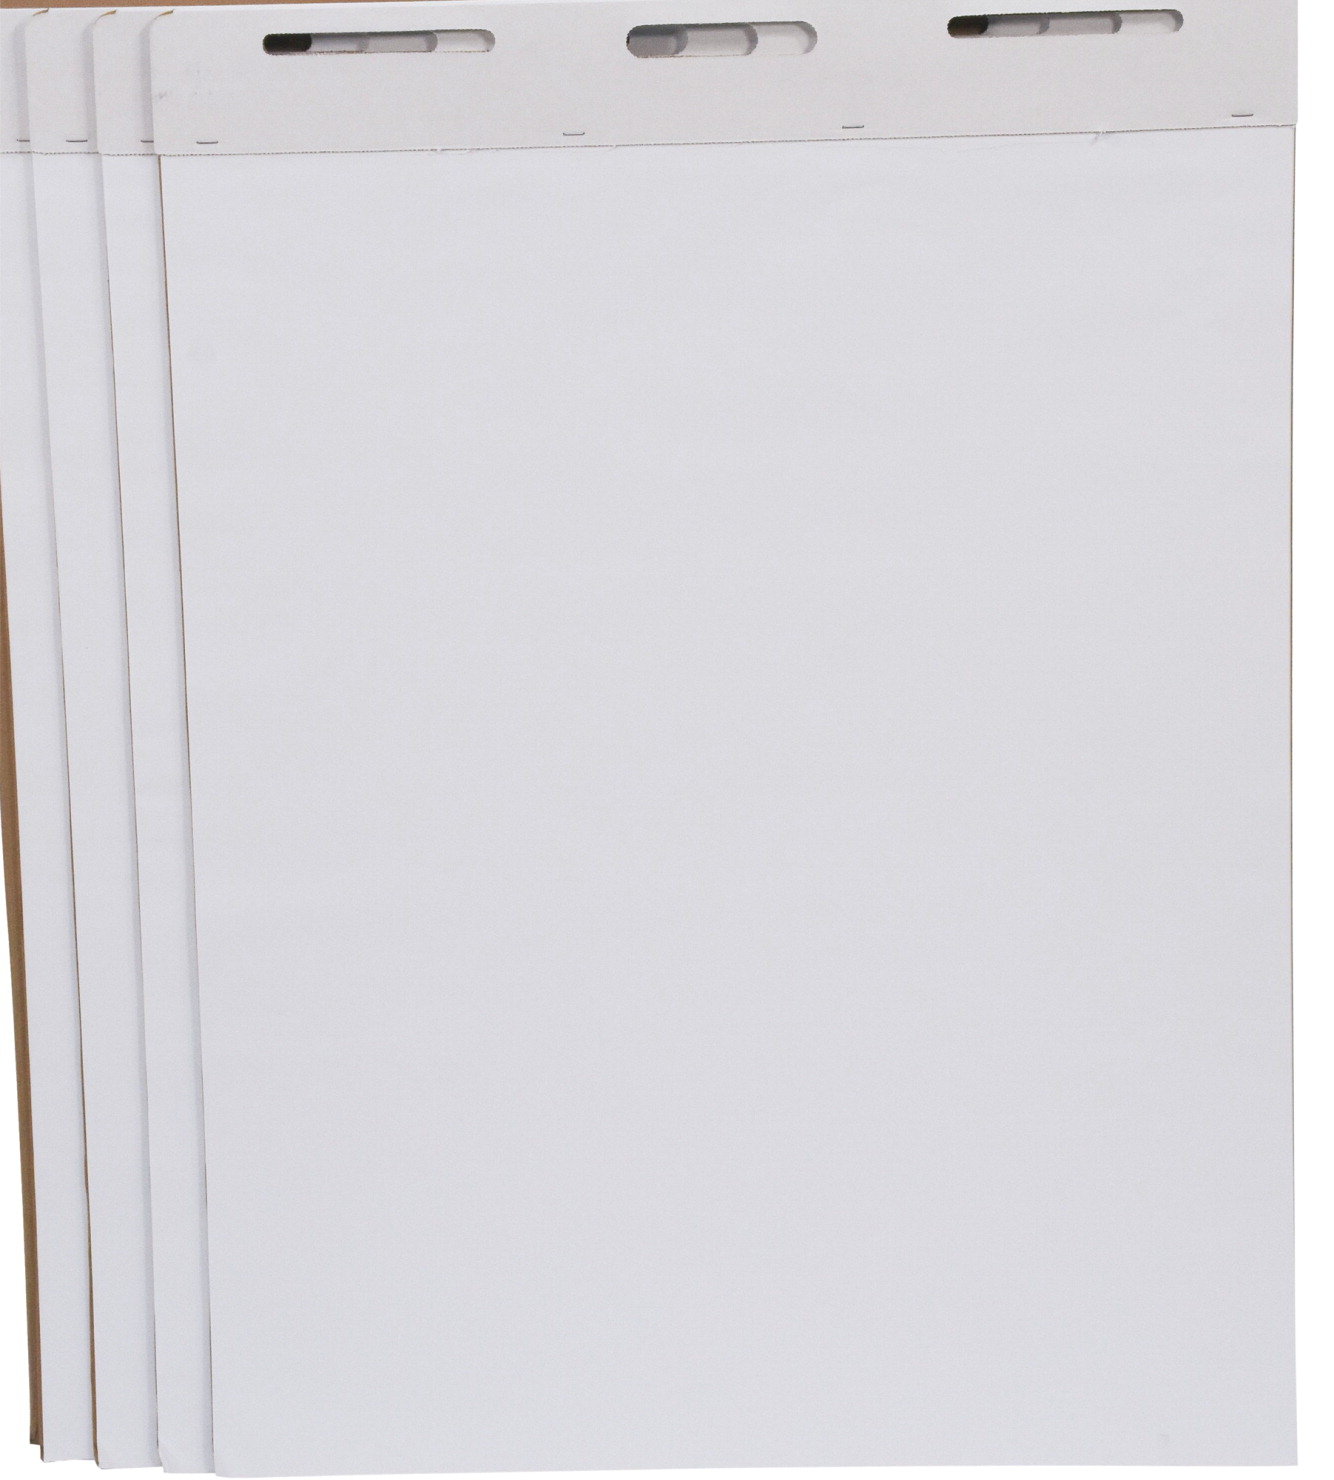 School Smart Unruled Easel Pad, 27 x 34 Inches, White, 50